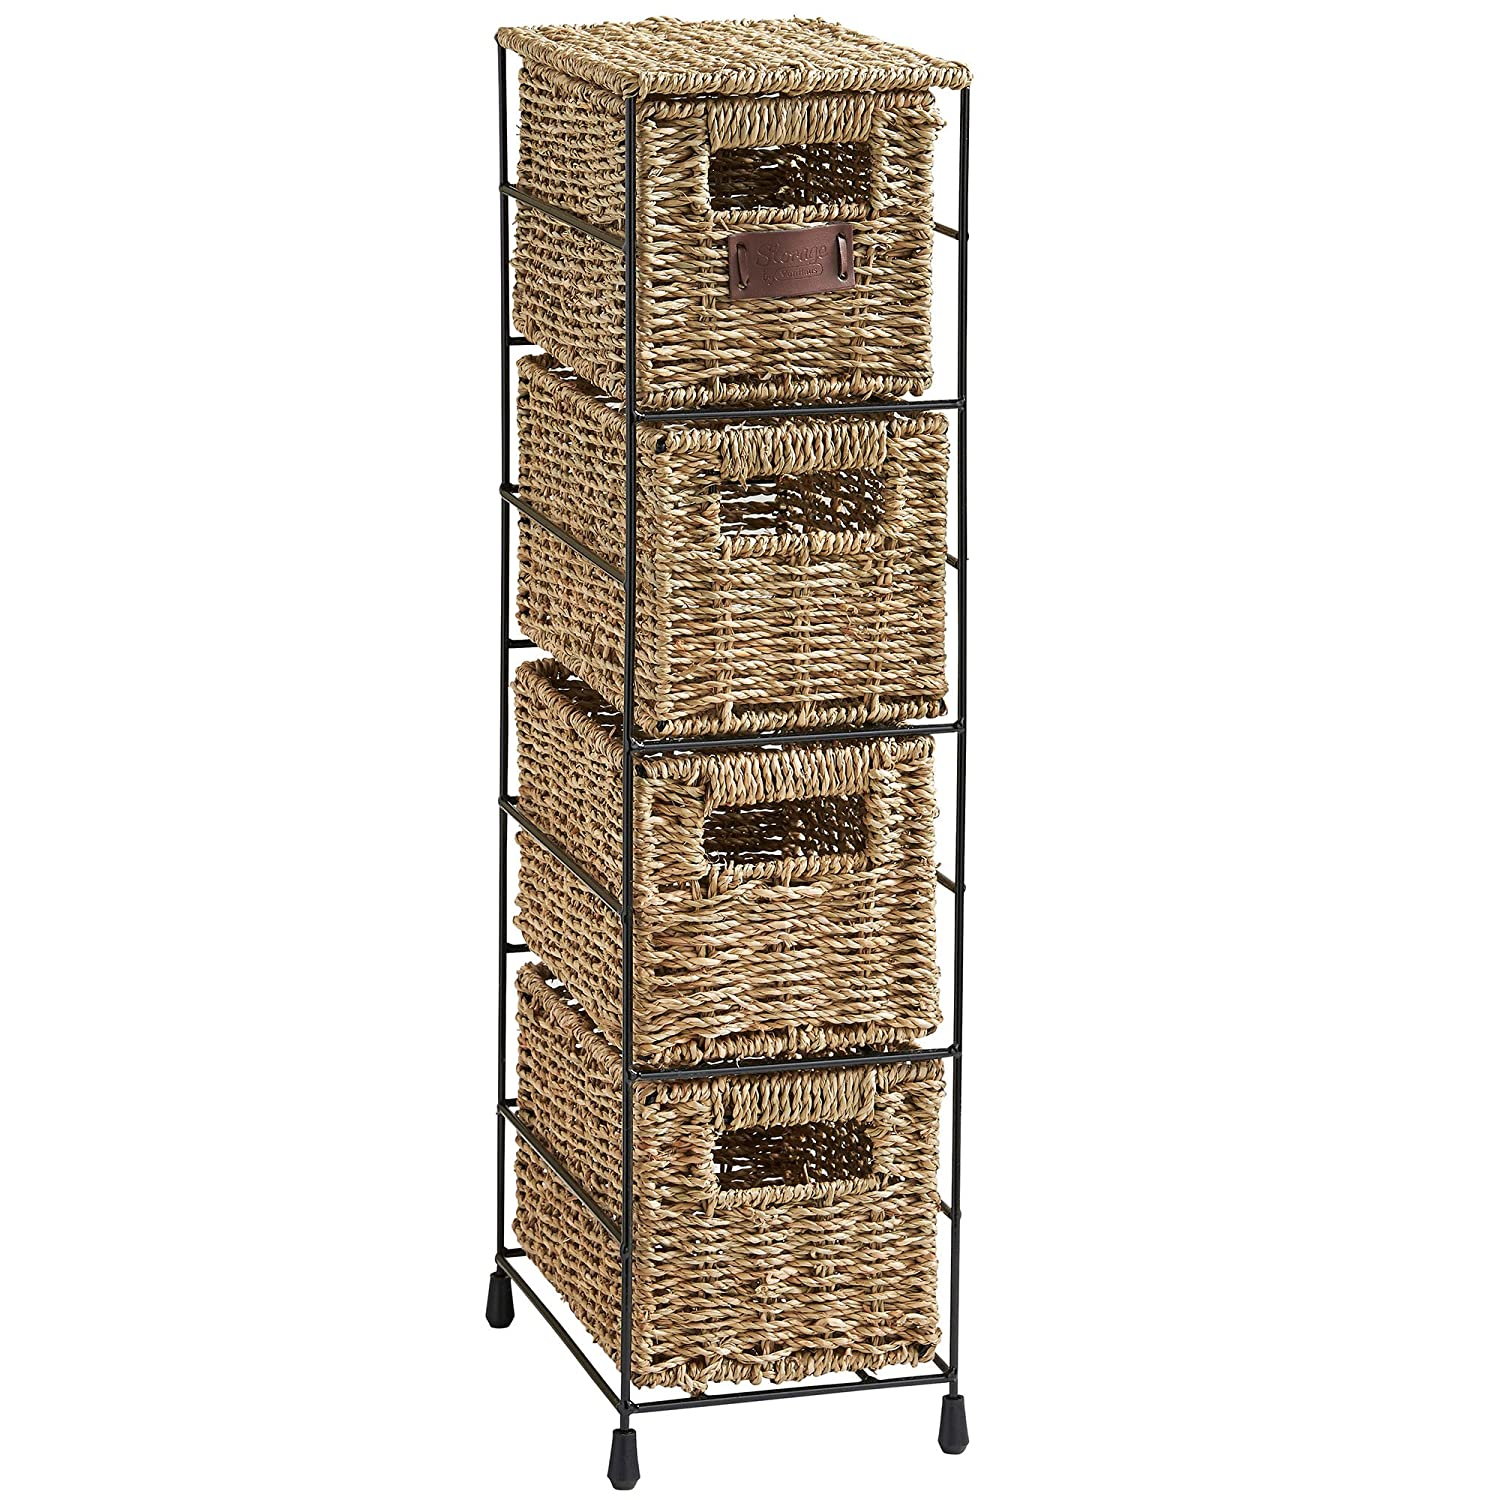 VonHaus 4 Tier Small Seagrass Basket Storage Tower Unit with Metal Frame - Ideal for Small Bathrooms & Home Storage (H25.4 x W9.5 x D6.7) Please Check Size of Unit